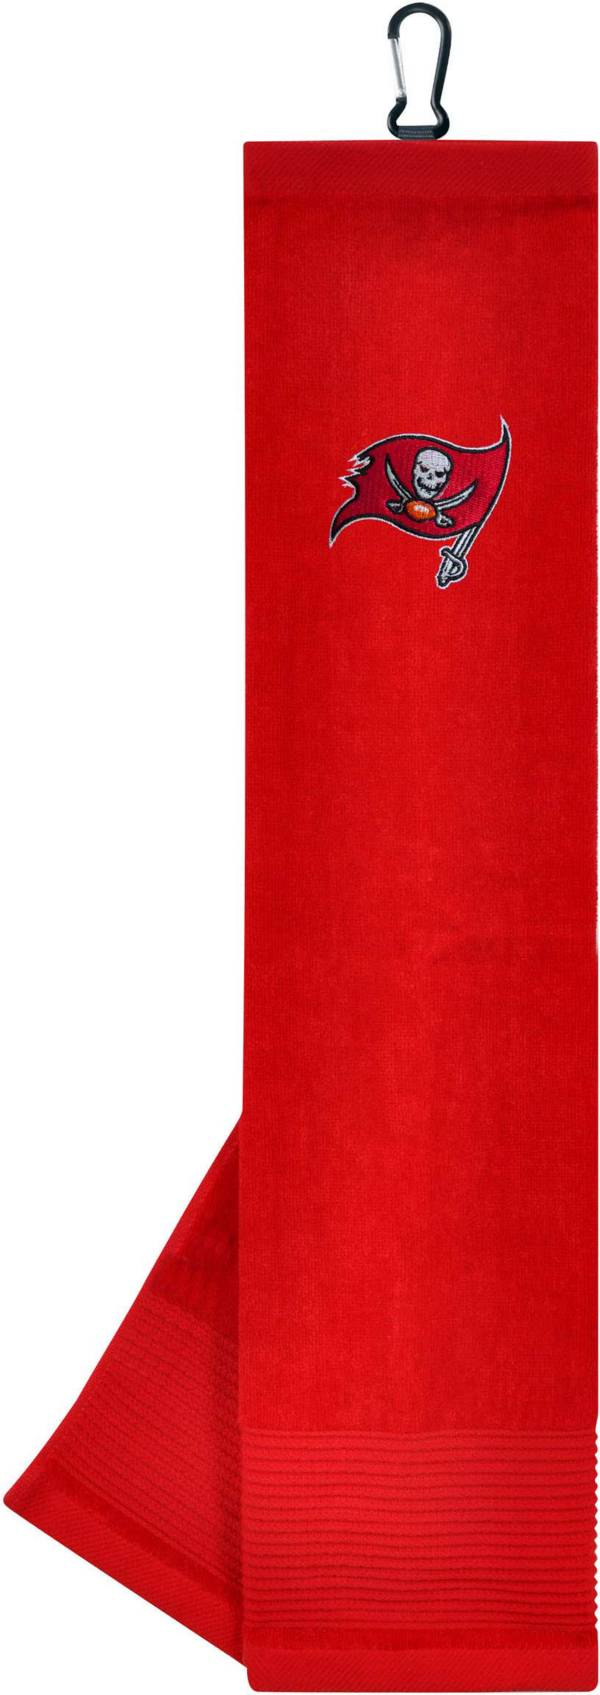 Team Effort Tampa Bay Buccaneers Embroidered Face/Club Tri-Fold Towel product image